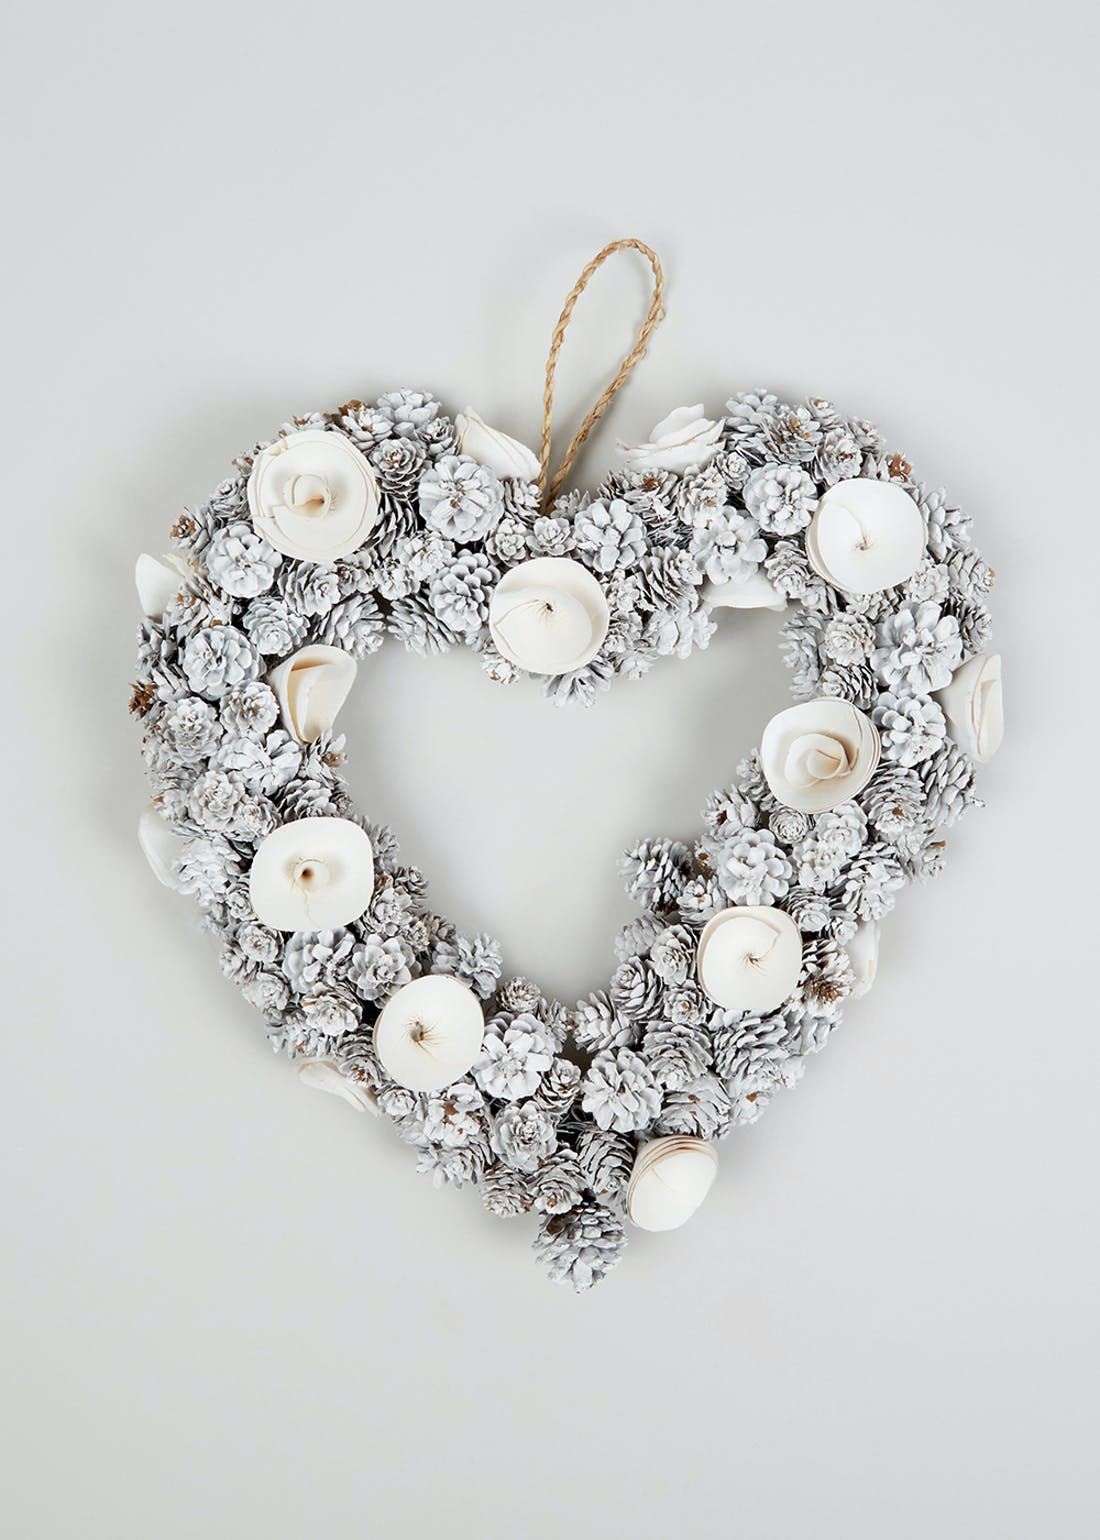 Heart Christmas Wreath (40cm x 30cm)